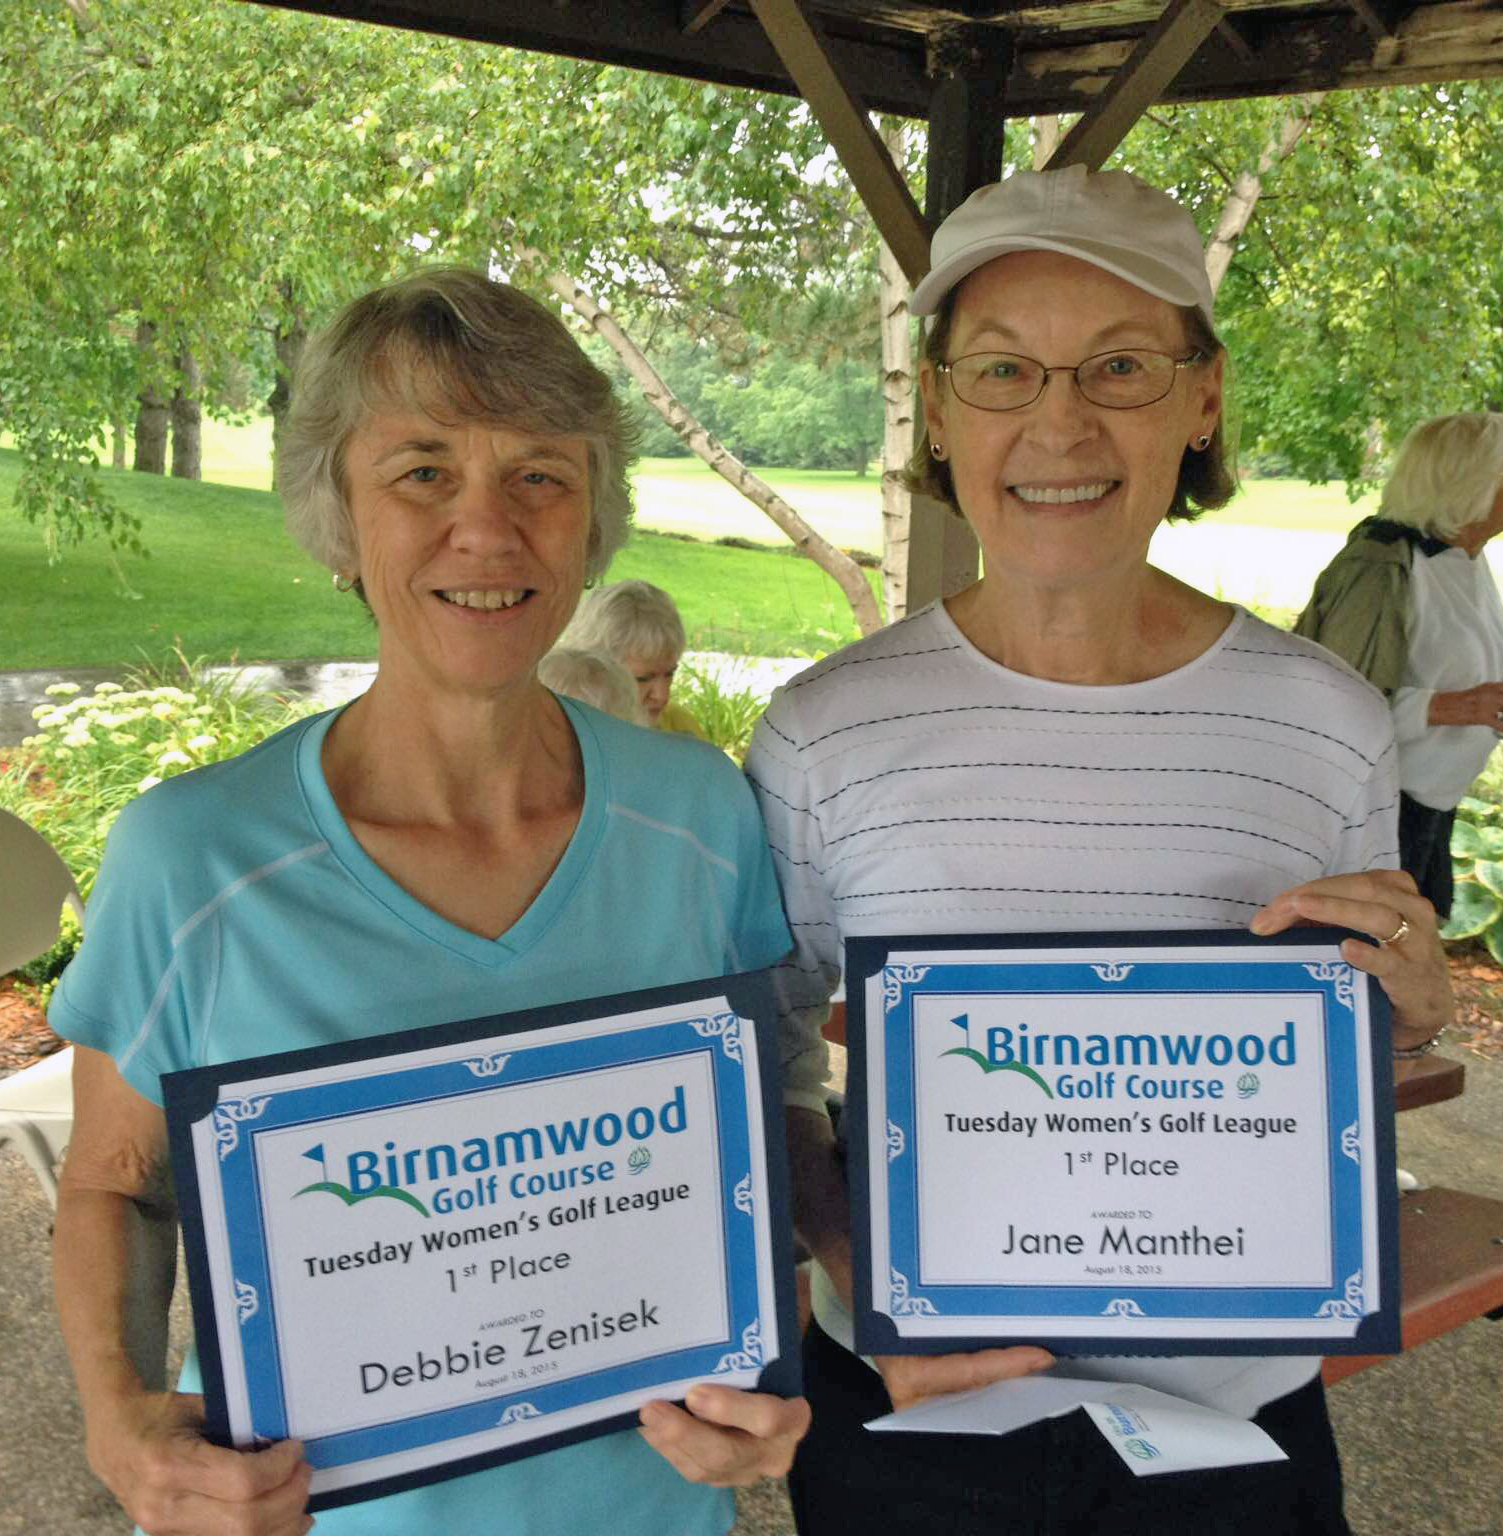 2015 Golf, Tuesday Women's League winners, Debbie Zenisek and Jan Manthei